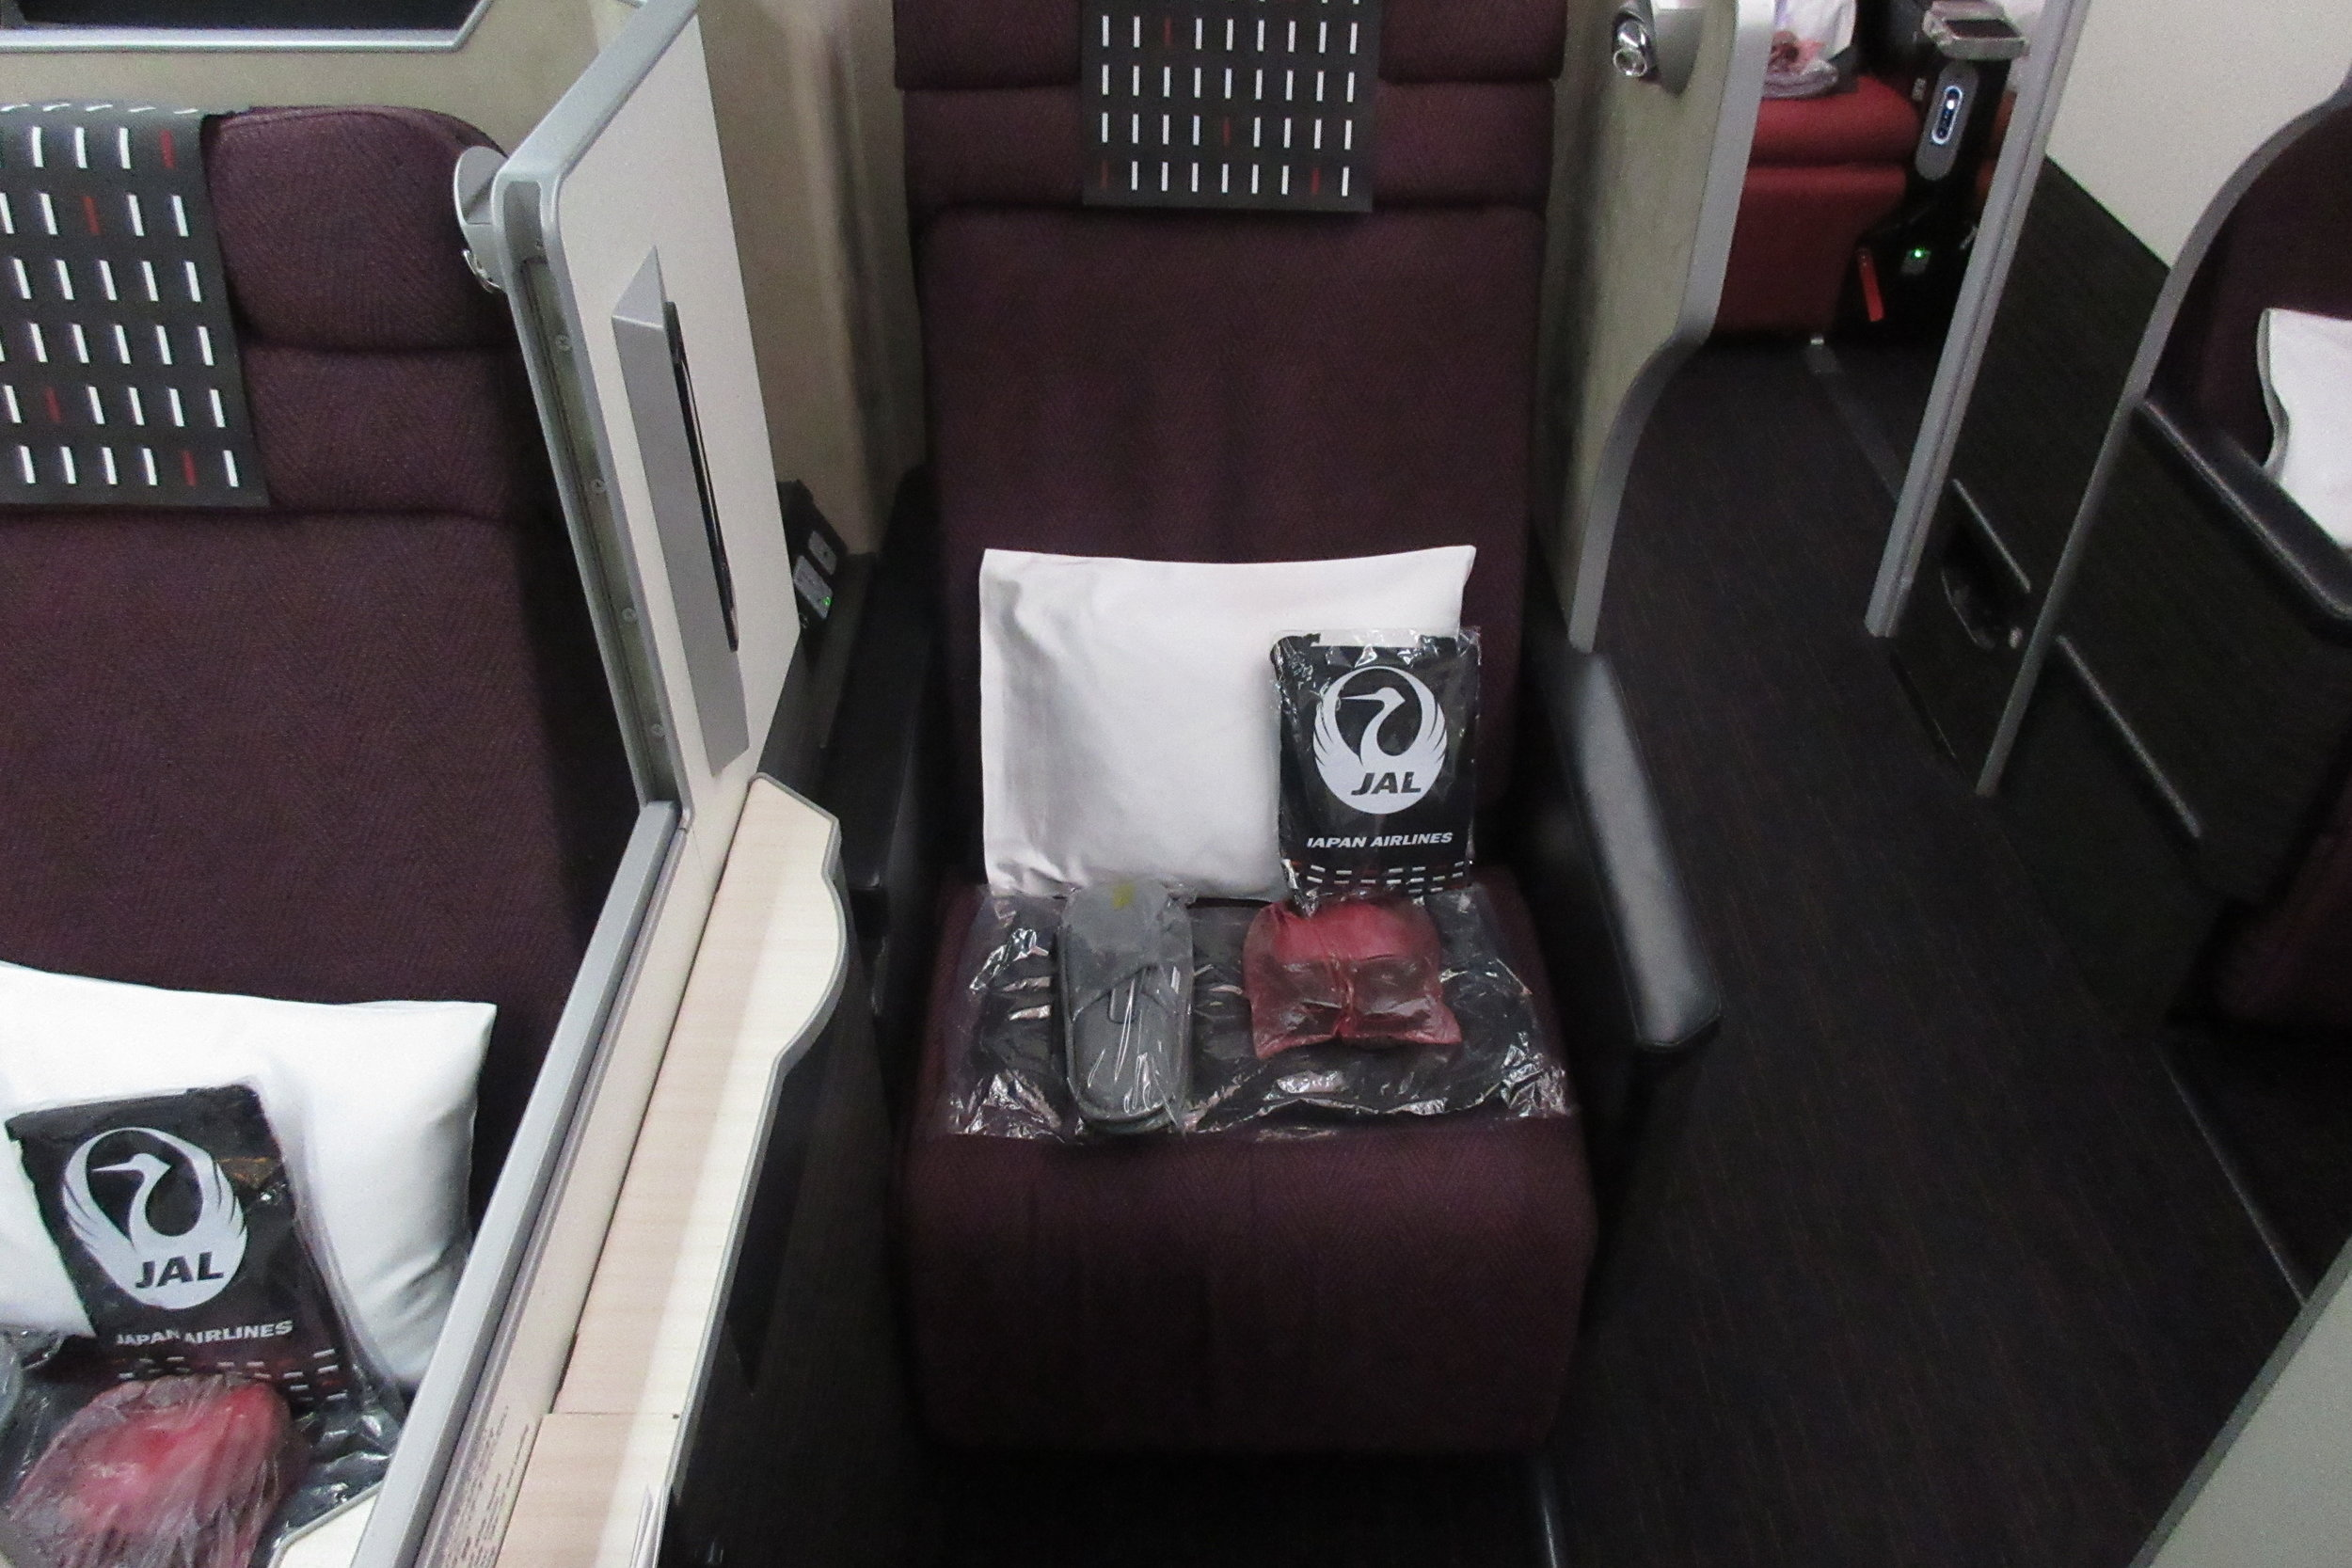 Japan Airlines business class – Seat 9H